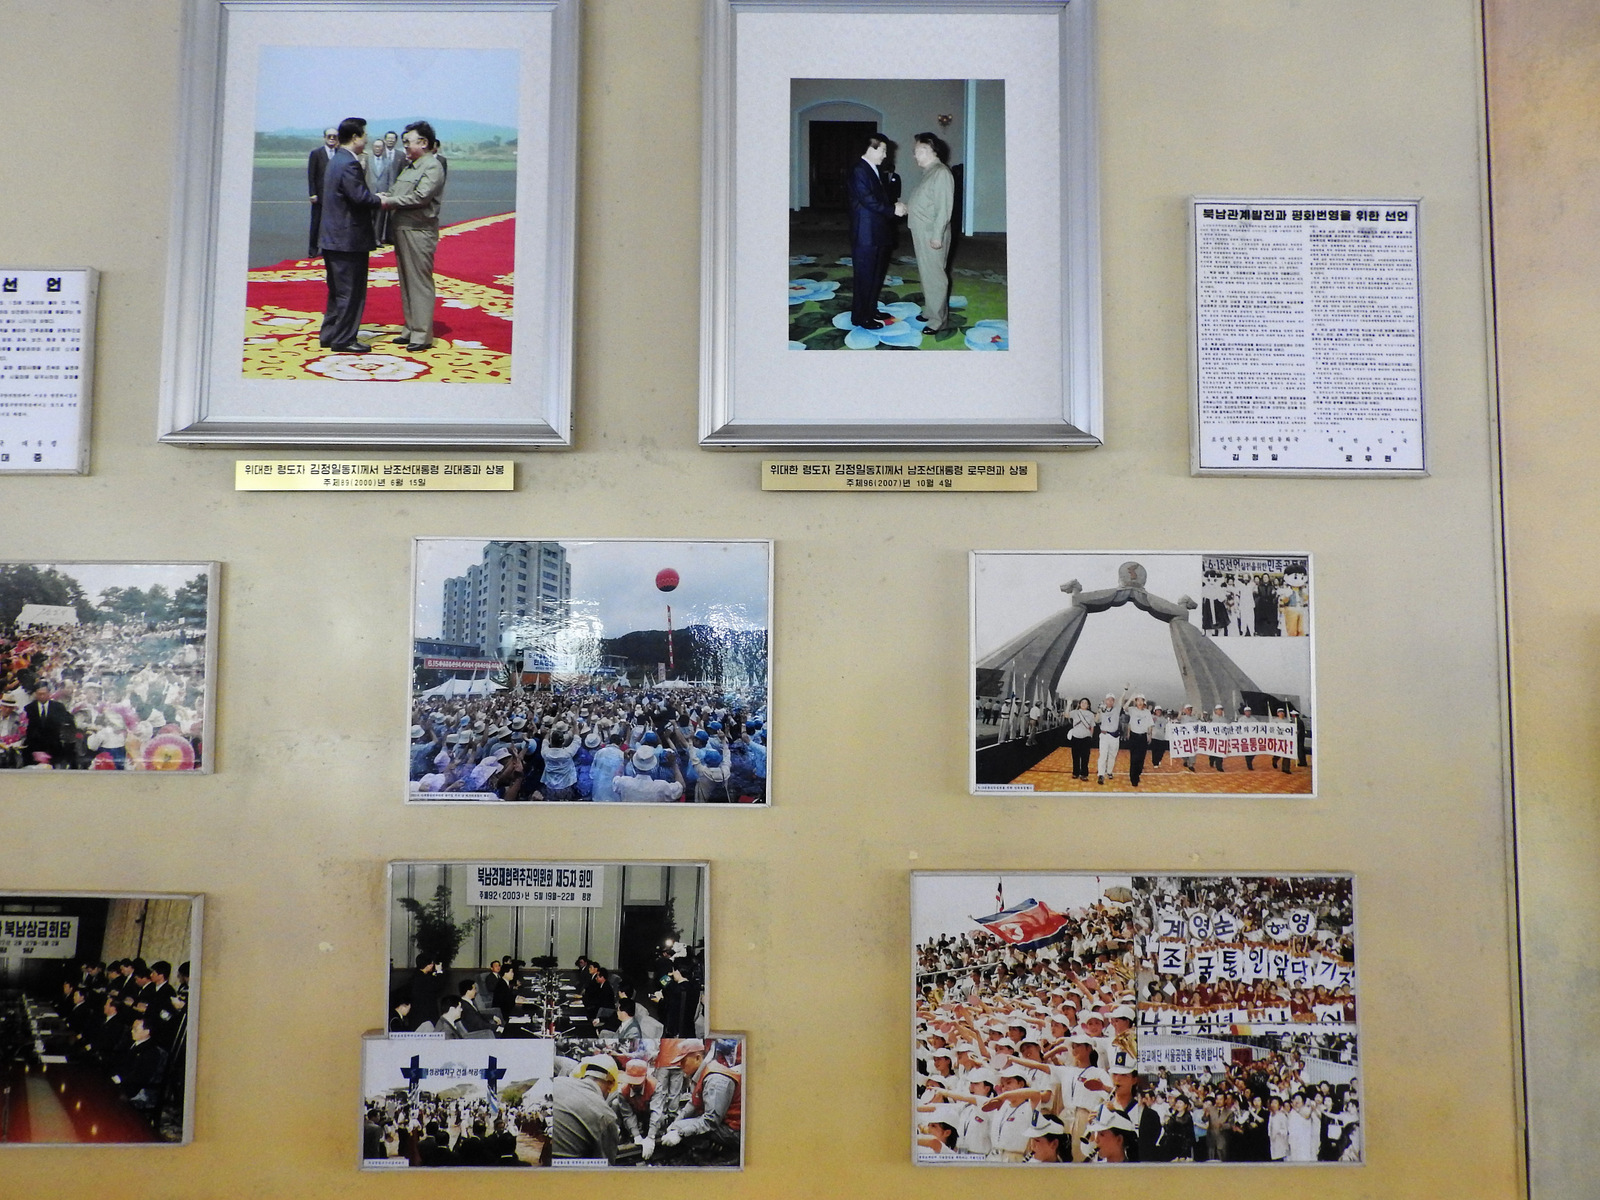 "In a hall near the DMZ, photos depict 2000 and 2007 meetings between North and South discussing reunification, as well as the support of the people in both South and North. Our guide at Panmunjom noted: ""On July 7, 1994, the day before he died, President Kim Il-Sung was looking through documents regarding reunification. He devoted his whole life to this."""